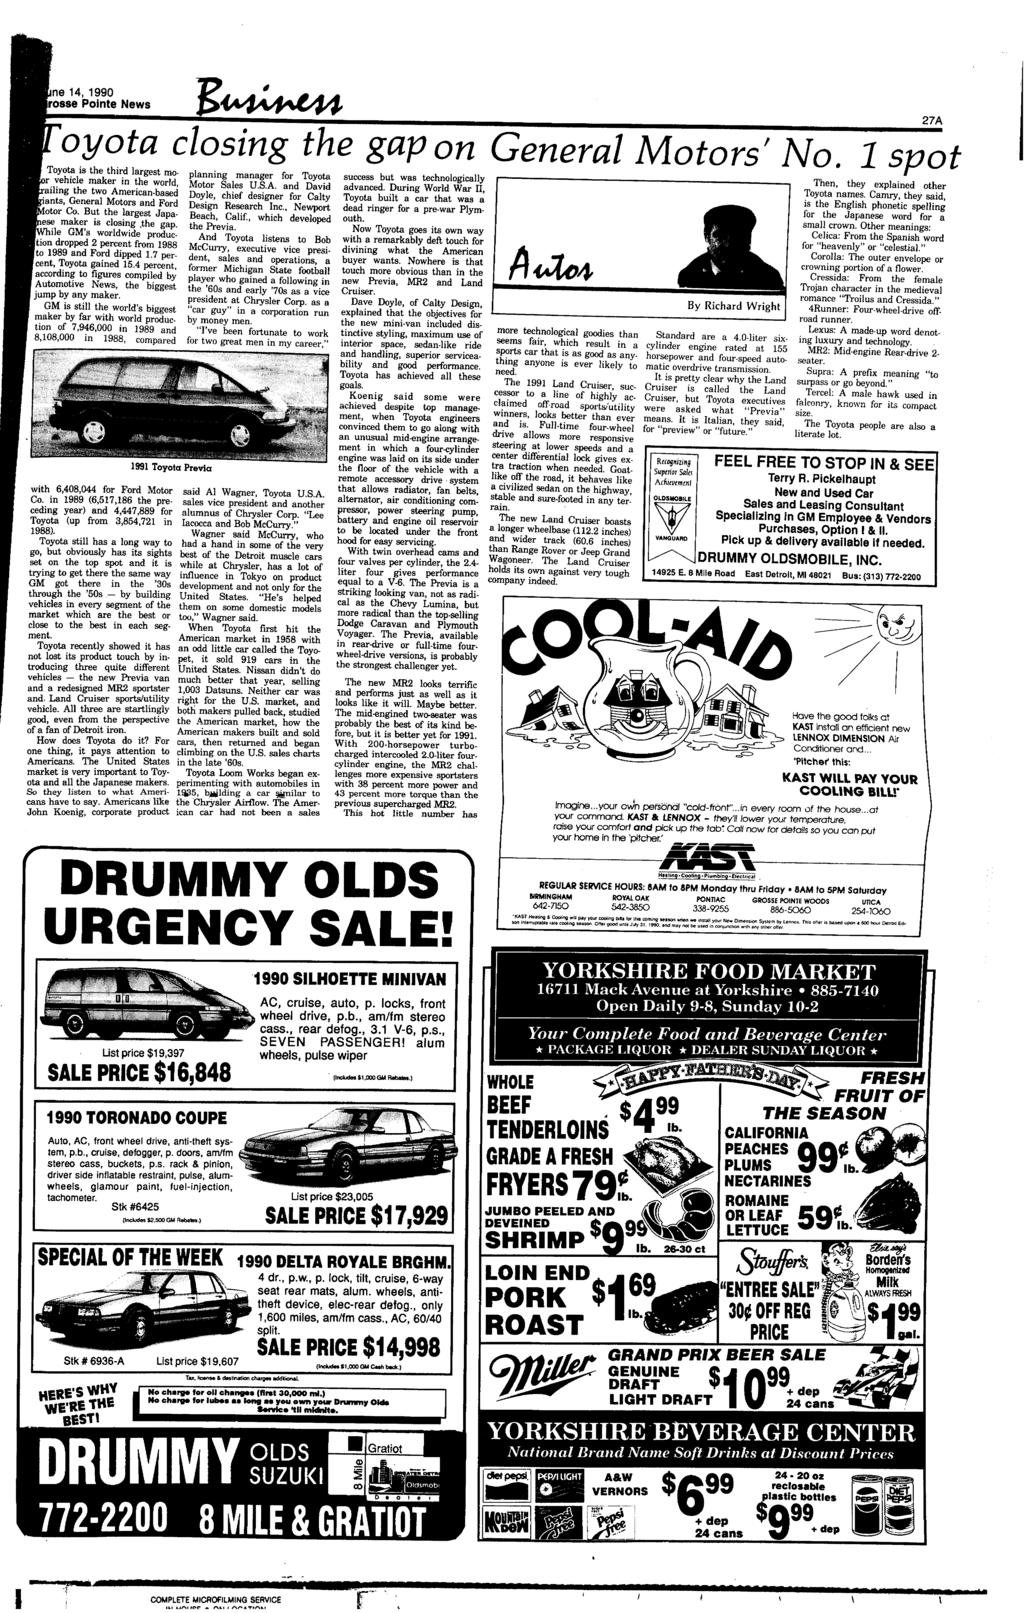 on E~ gap Pointe News 141990 General rosse the oyota closing ne Motors 9EH2DIW